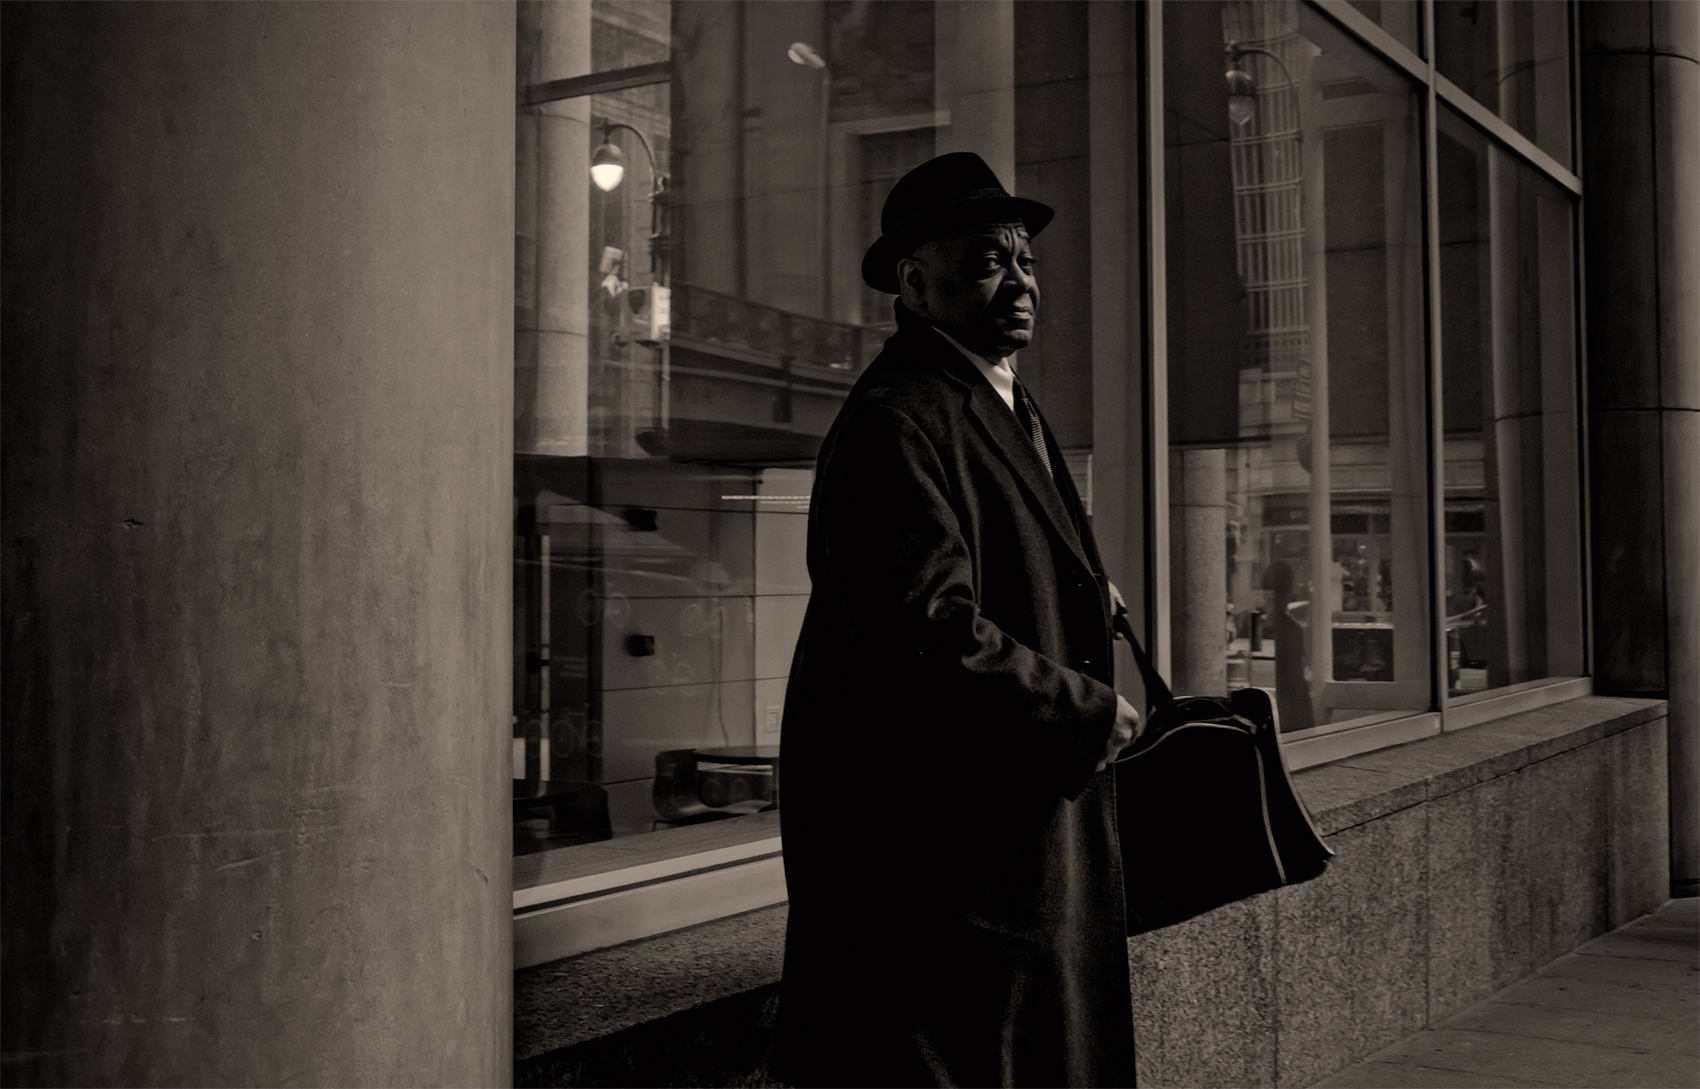 To work, near Grand Central Station, New York City